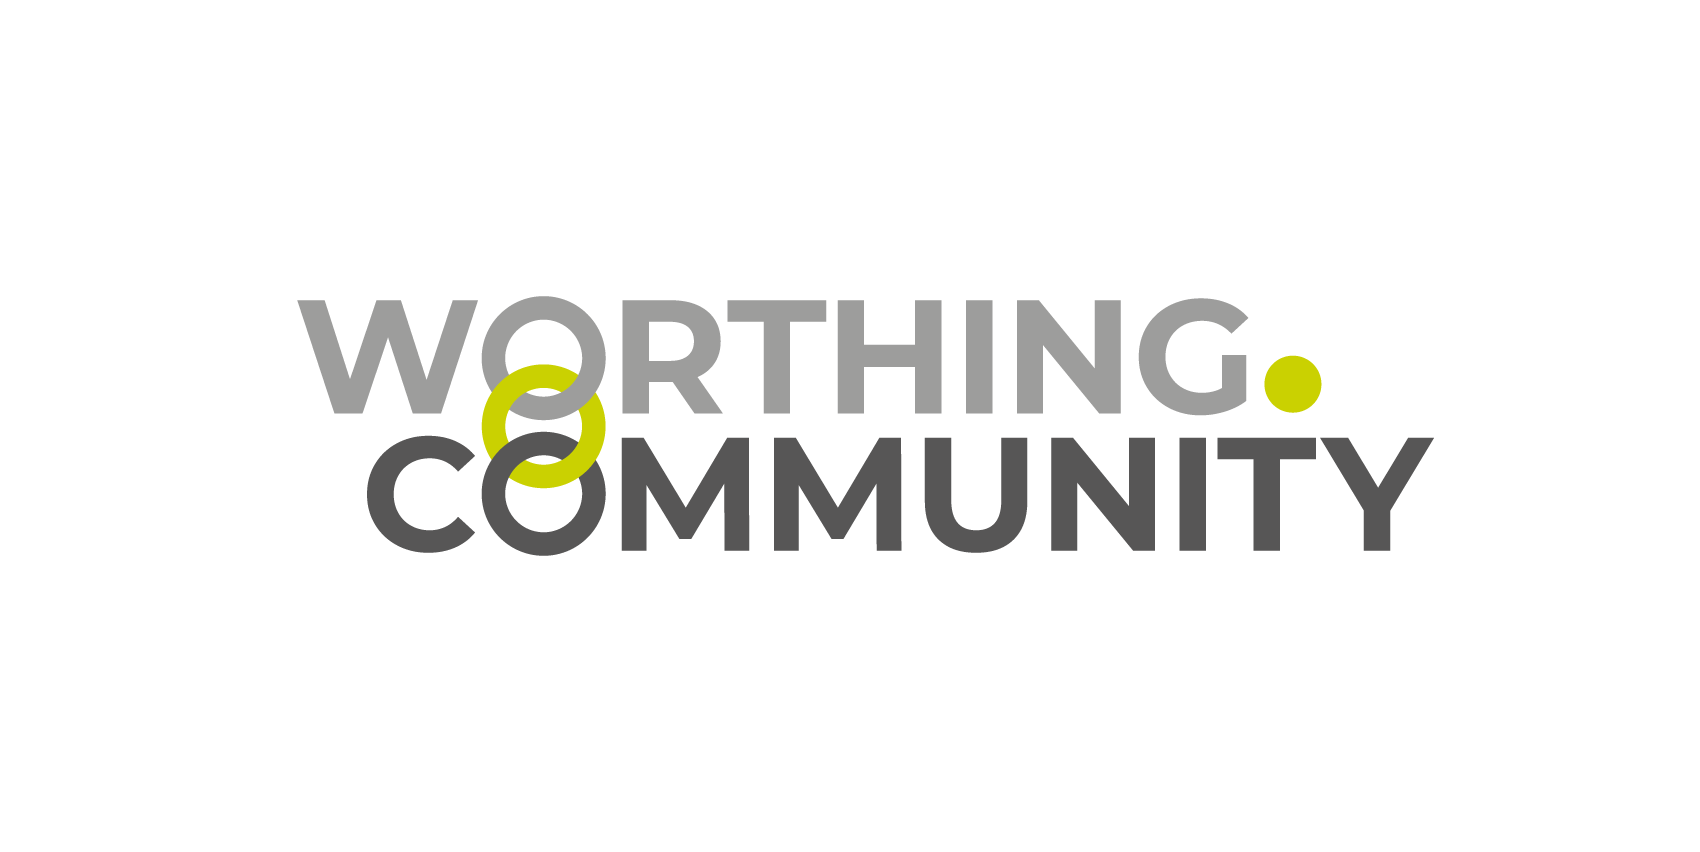 Worthing Community